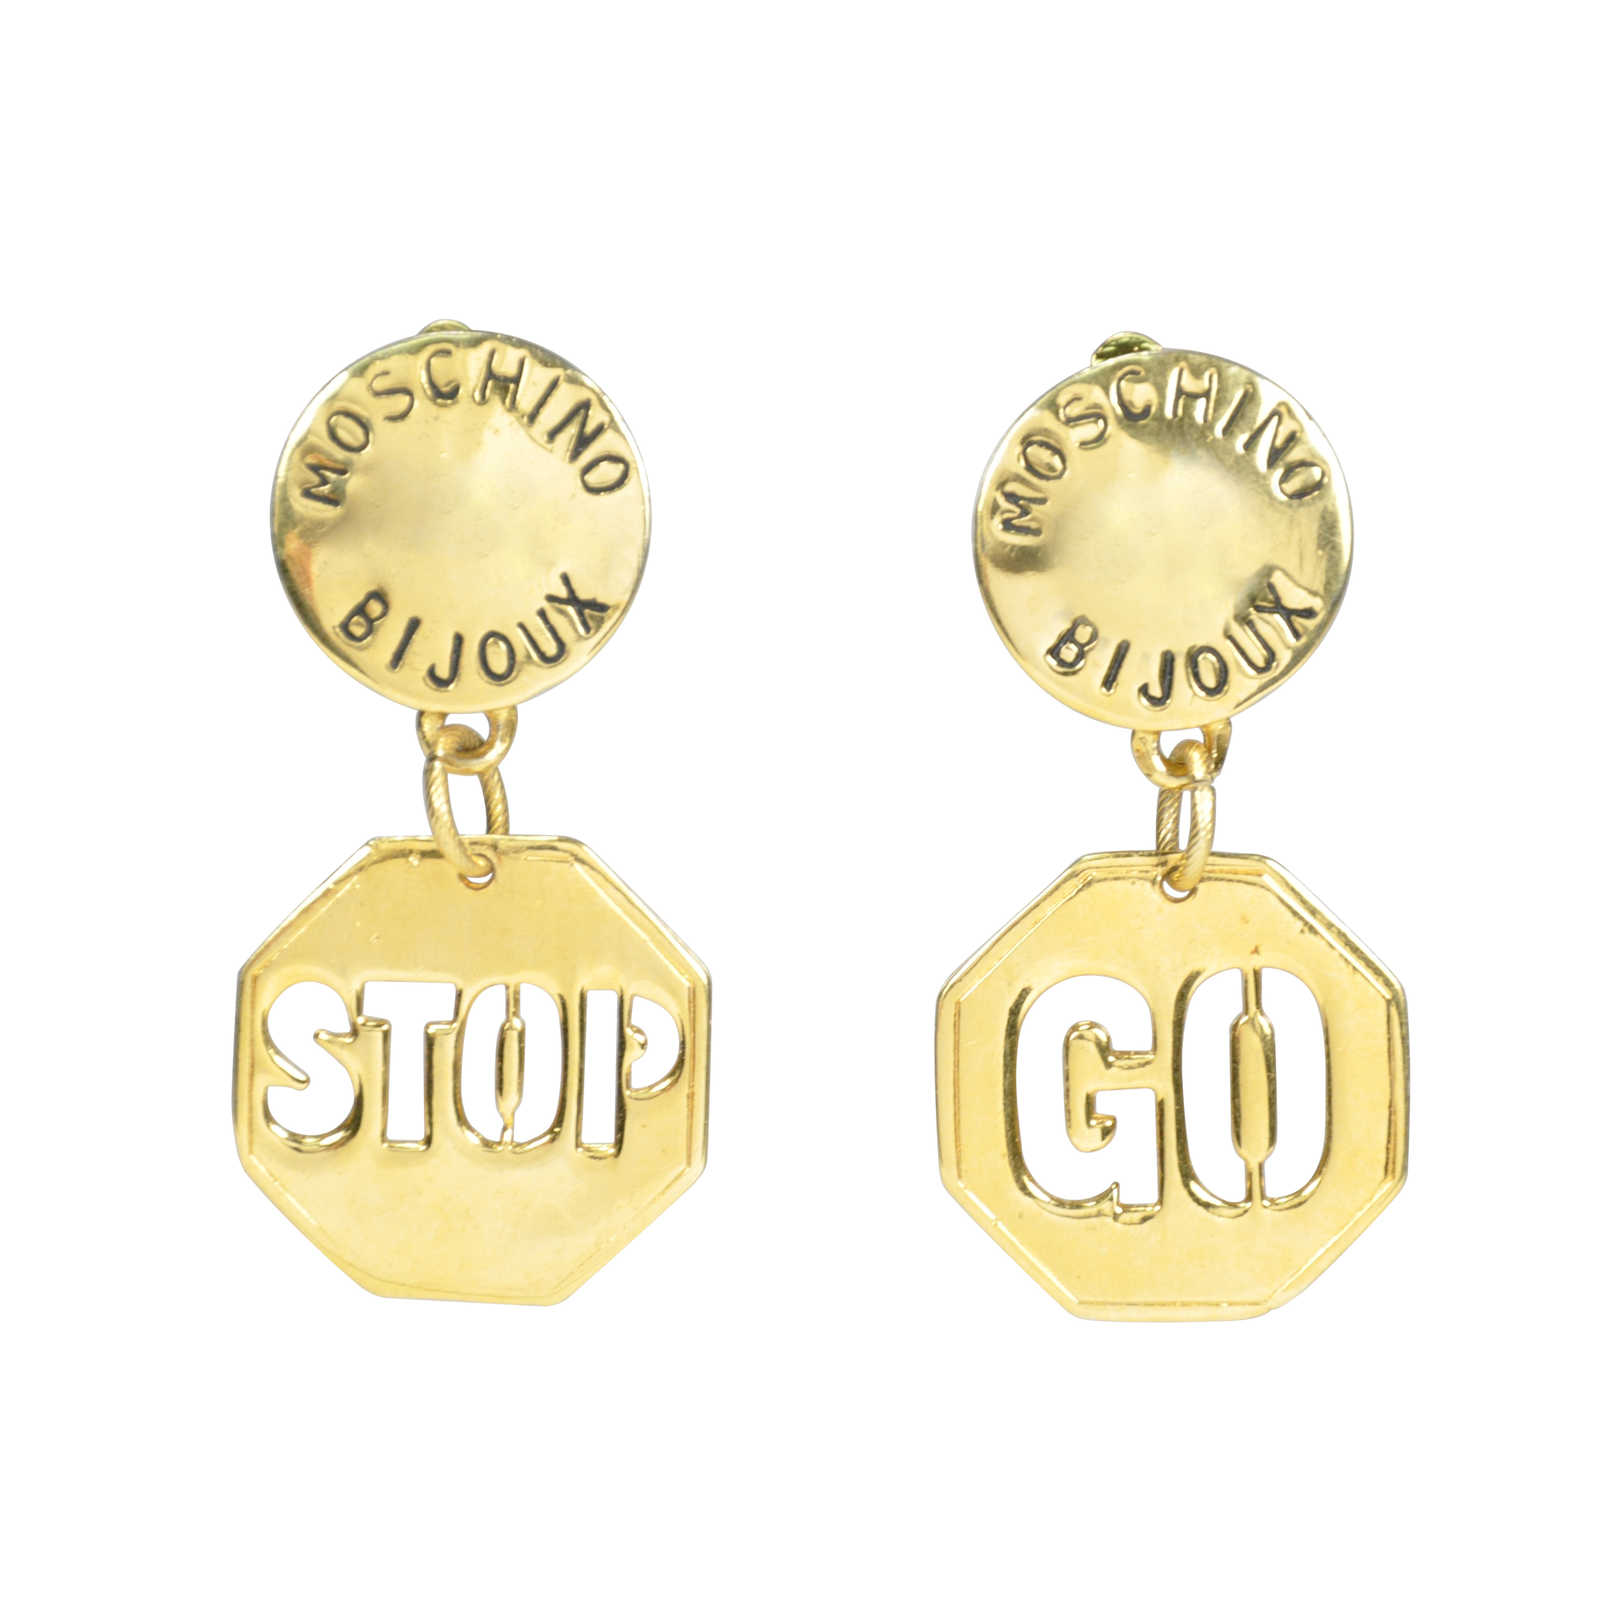 authentic vintage moschino stop go earrings tfc 106 00007 the fifth collection. Black Bedroom Furniture Sets. Home Design Ideas